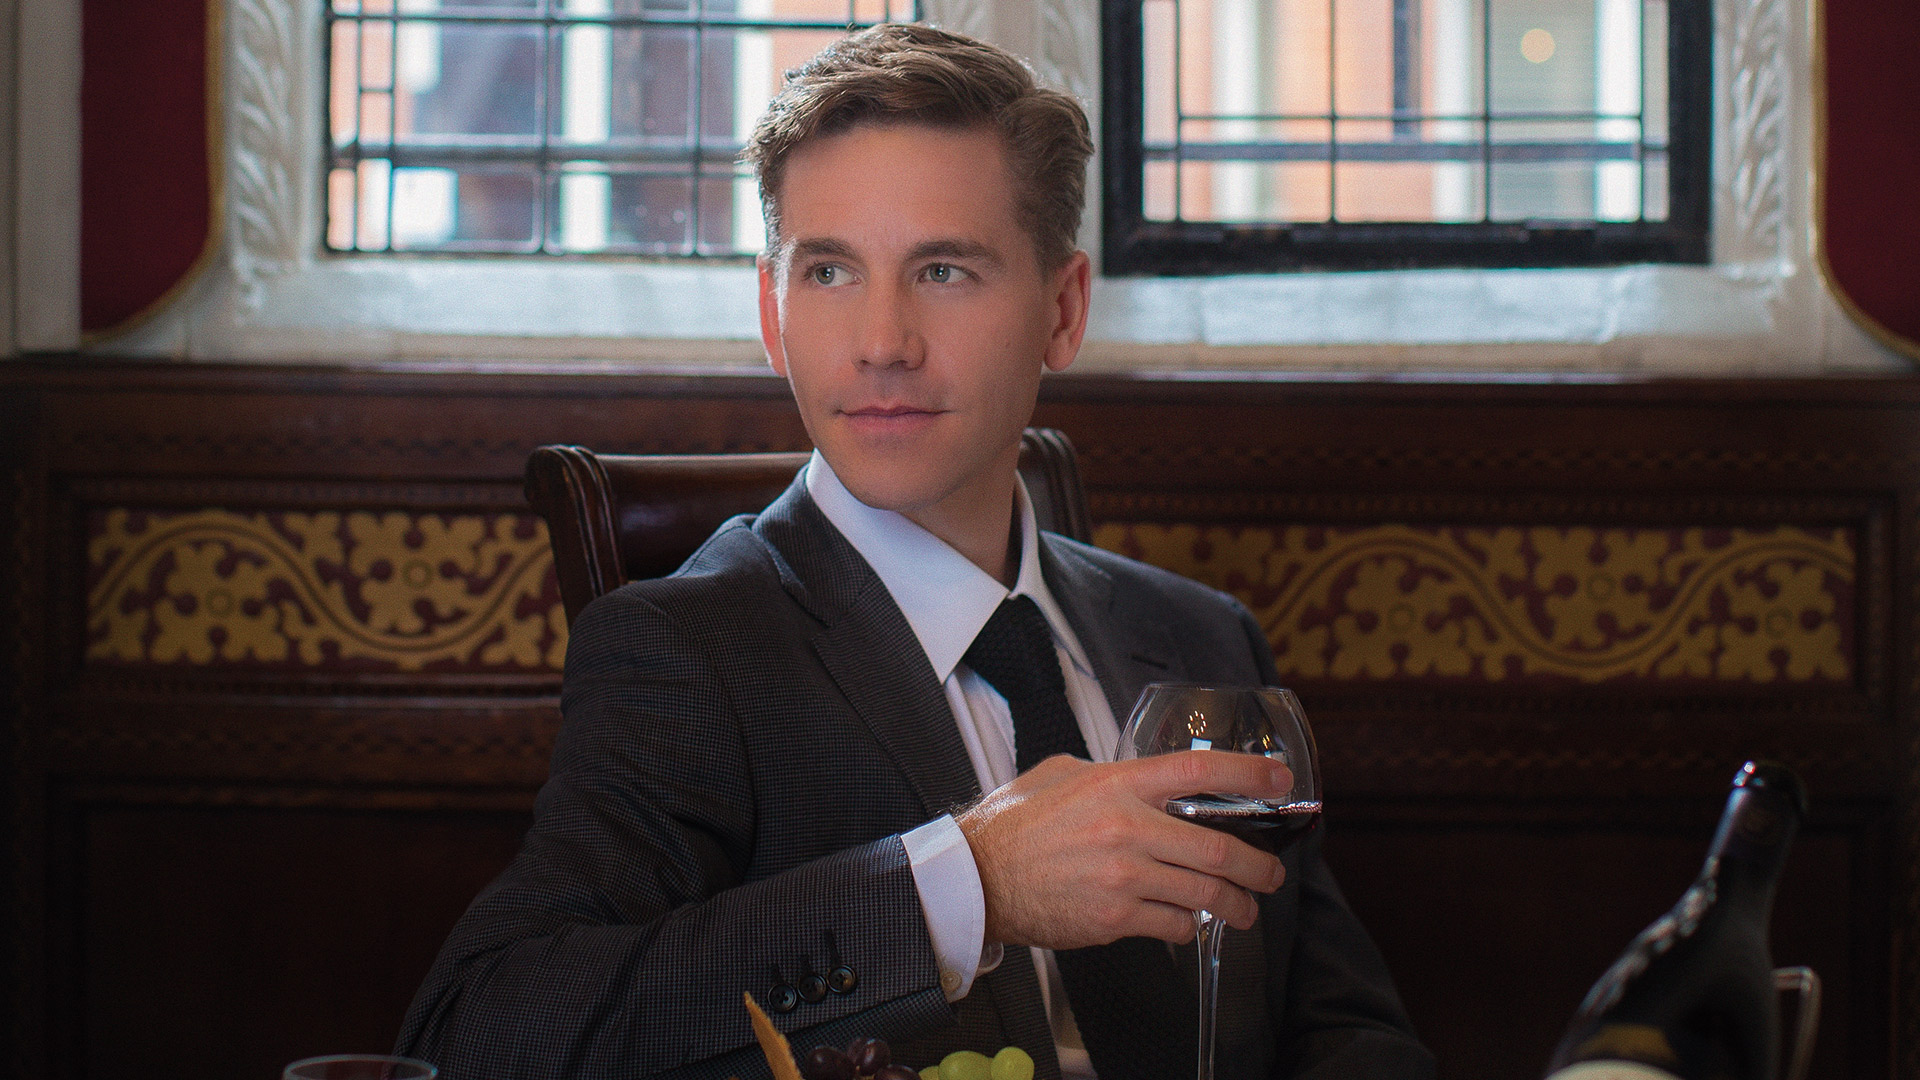 We'd wine and dine with Brian Dietzen anytime